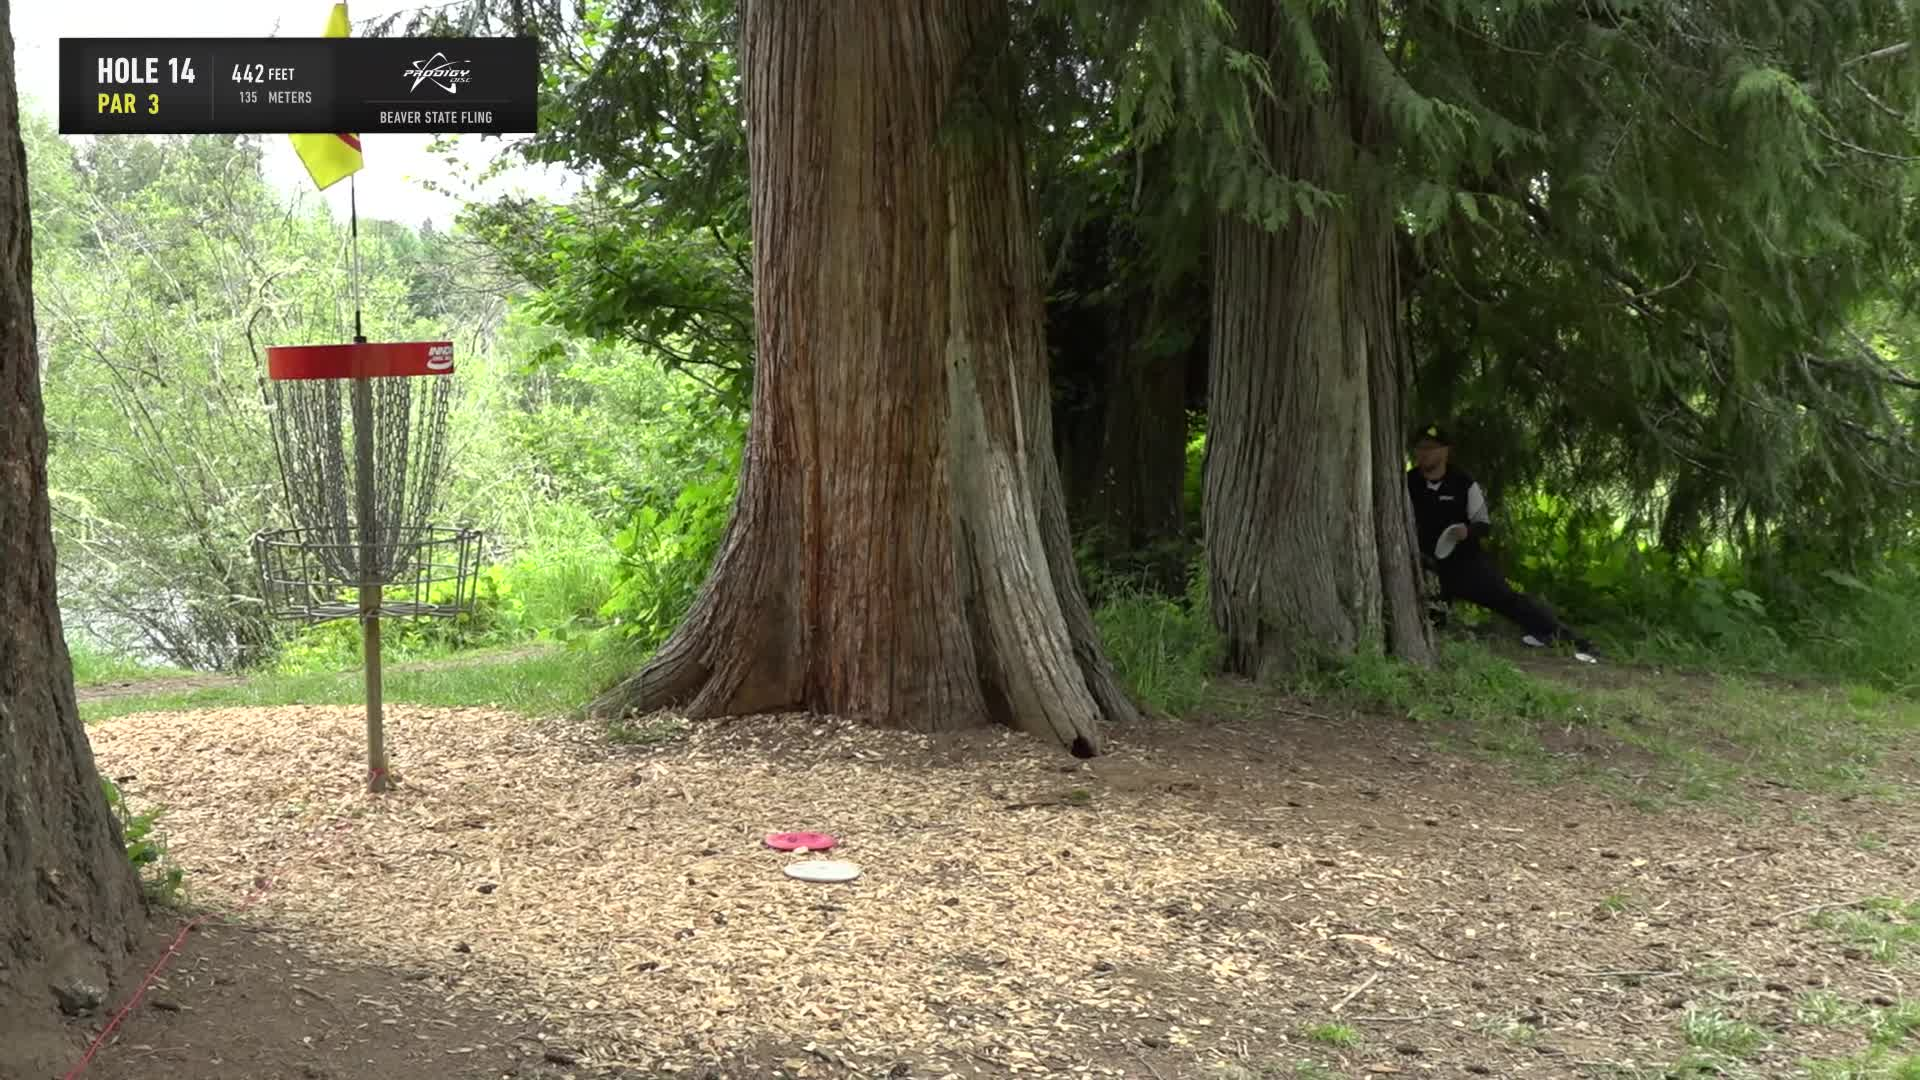 ace, bsf, dela, delaveaga, dgpt, dgwt, disc, disc golf, frolf, hole in one, masters cup, mcbeast, milo, nate sexton, nt, paul mcbeth, pdga, simon lizotte, tournament, worlds, 2019 Beaver State Fling - Round 1 Part 2 - Kyle Crabtree hole 14 putt GIFs